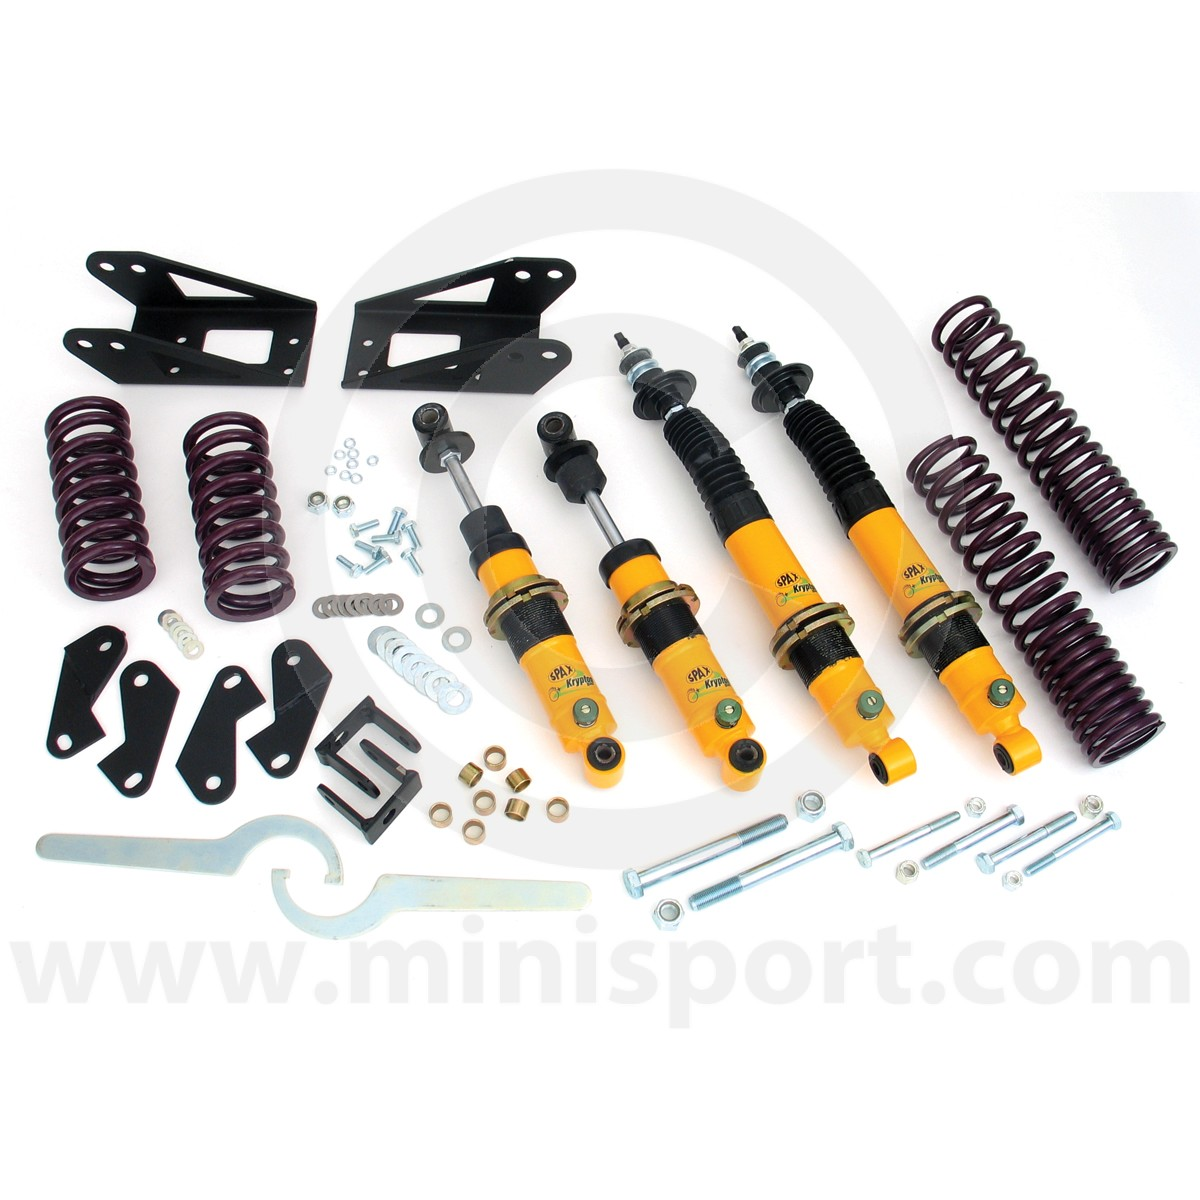 Rsx519 Mini Spax Coil Over Conversion Kit Sport 1275 Gt With Alternator And Rocker Type Switches Sparsx519 Adjustable